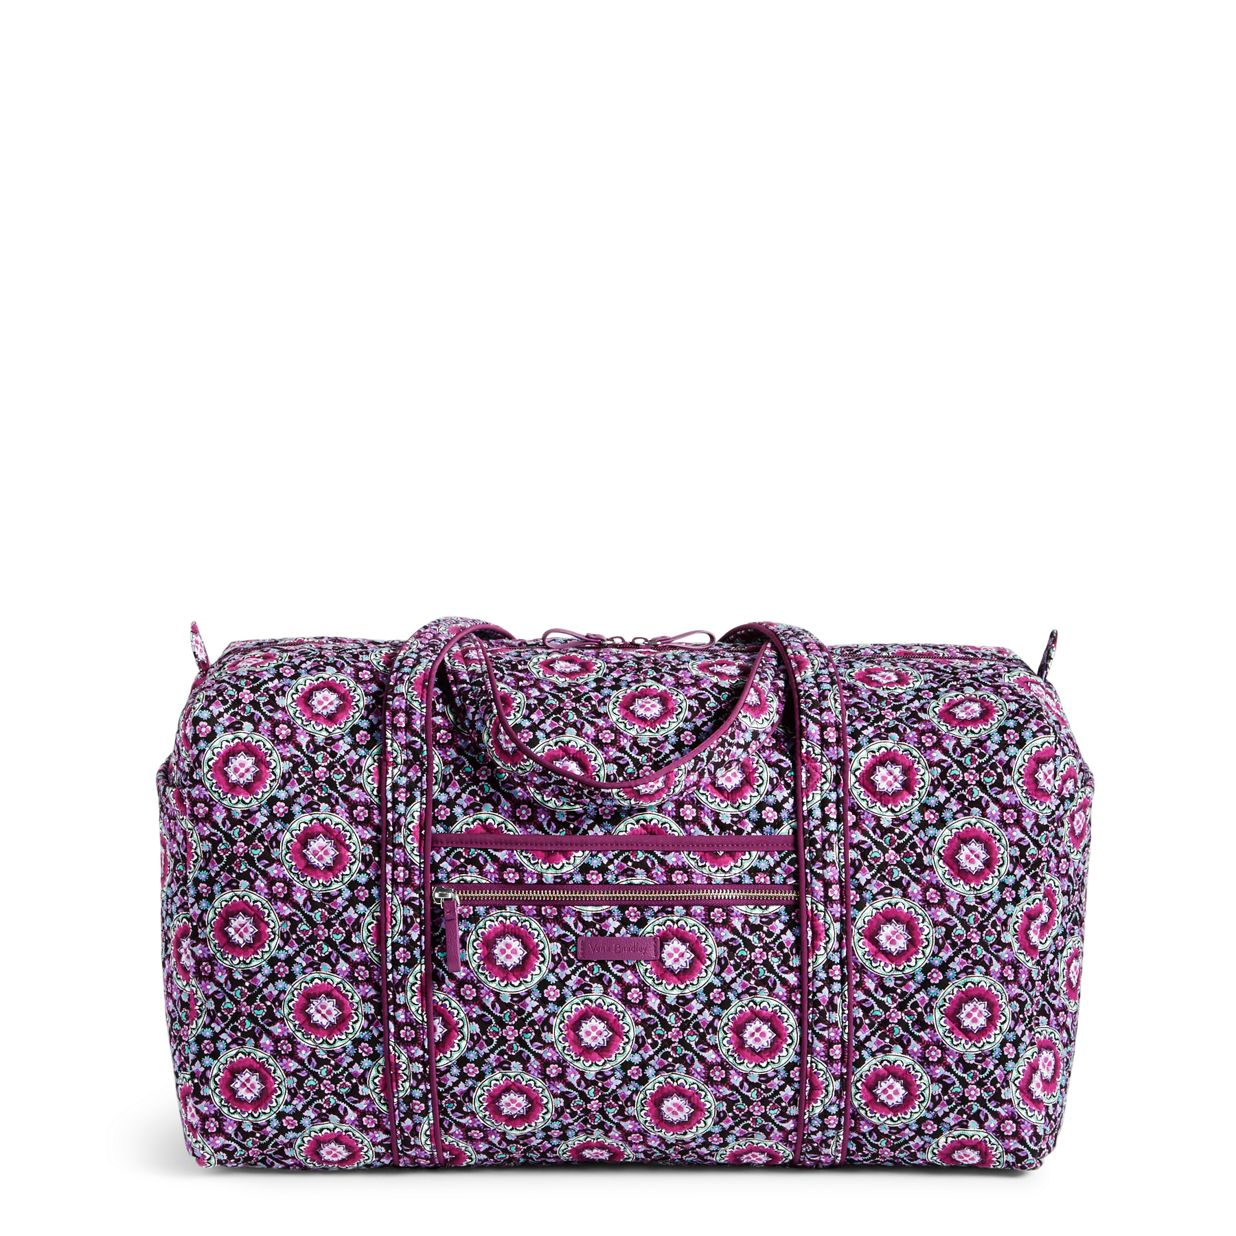 Image of Iconic Large Travel Duffel in Lilac Medallion 0be2bfb863